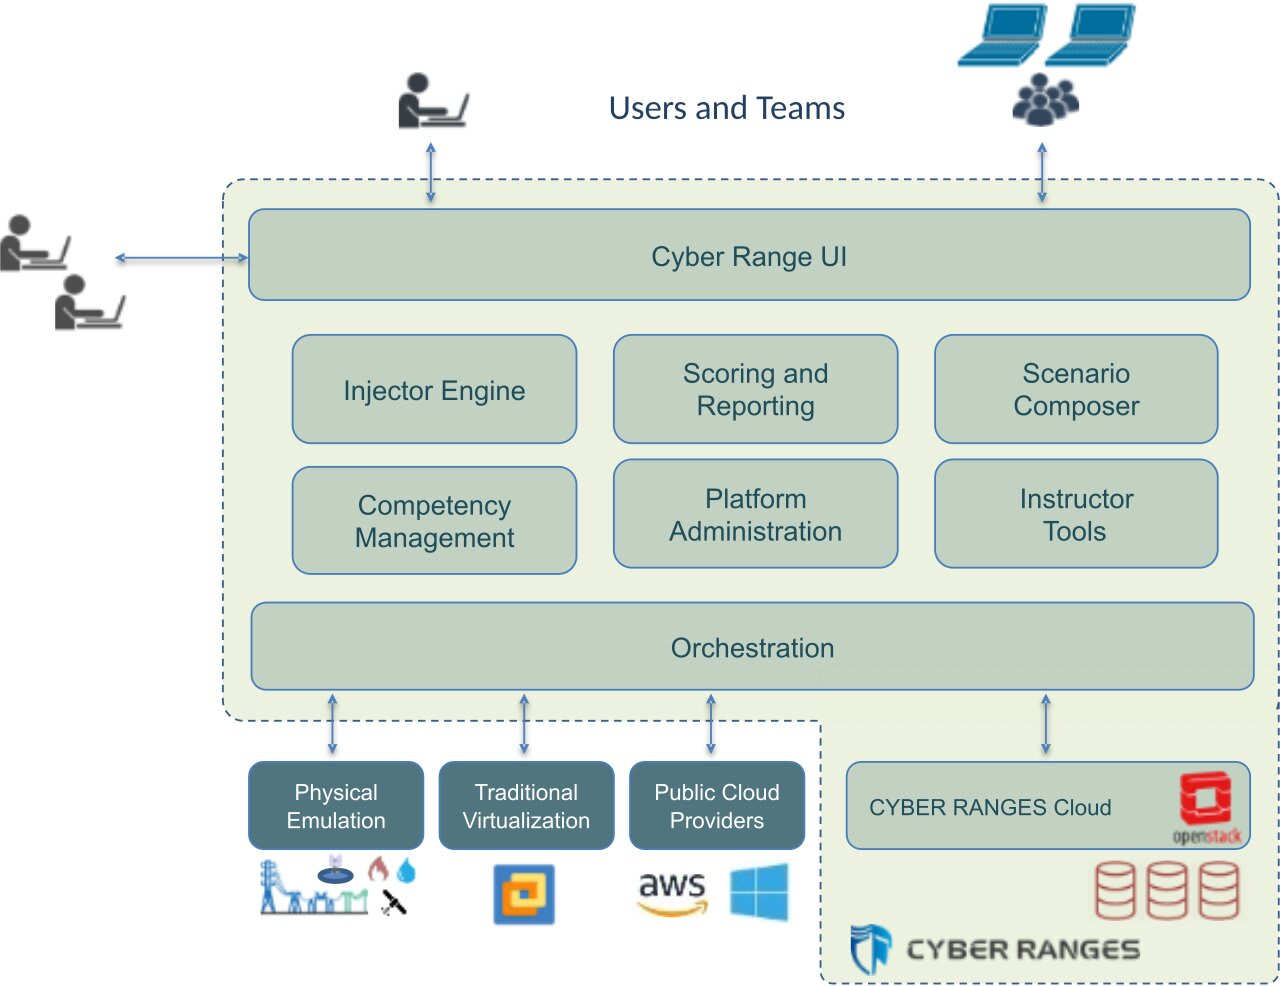 cybersecurity-upskilling-progression-and-experience